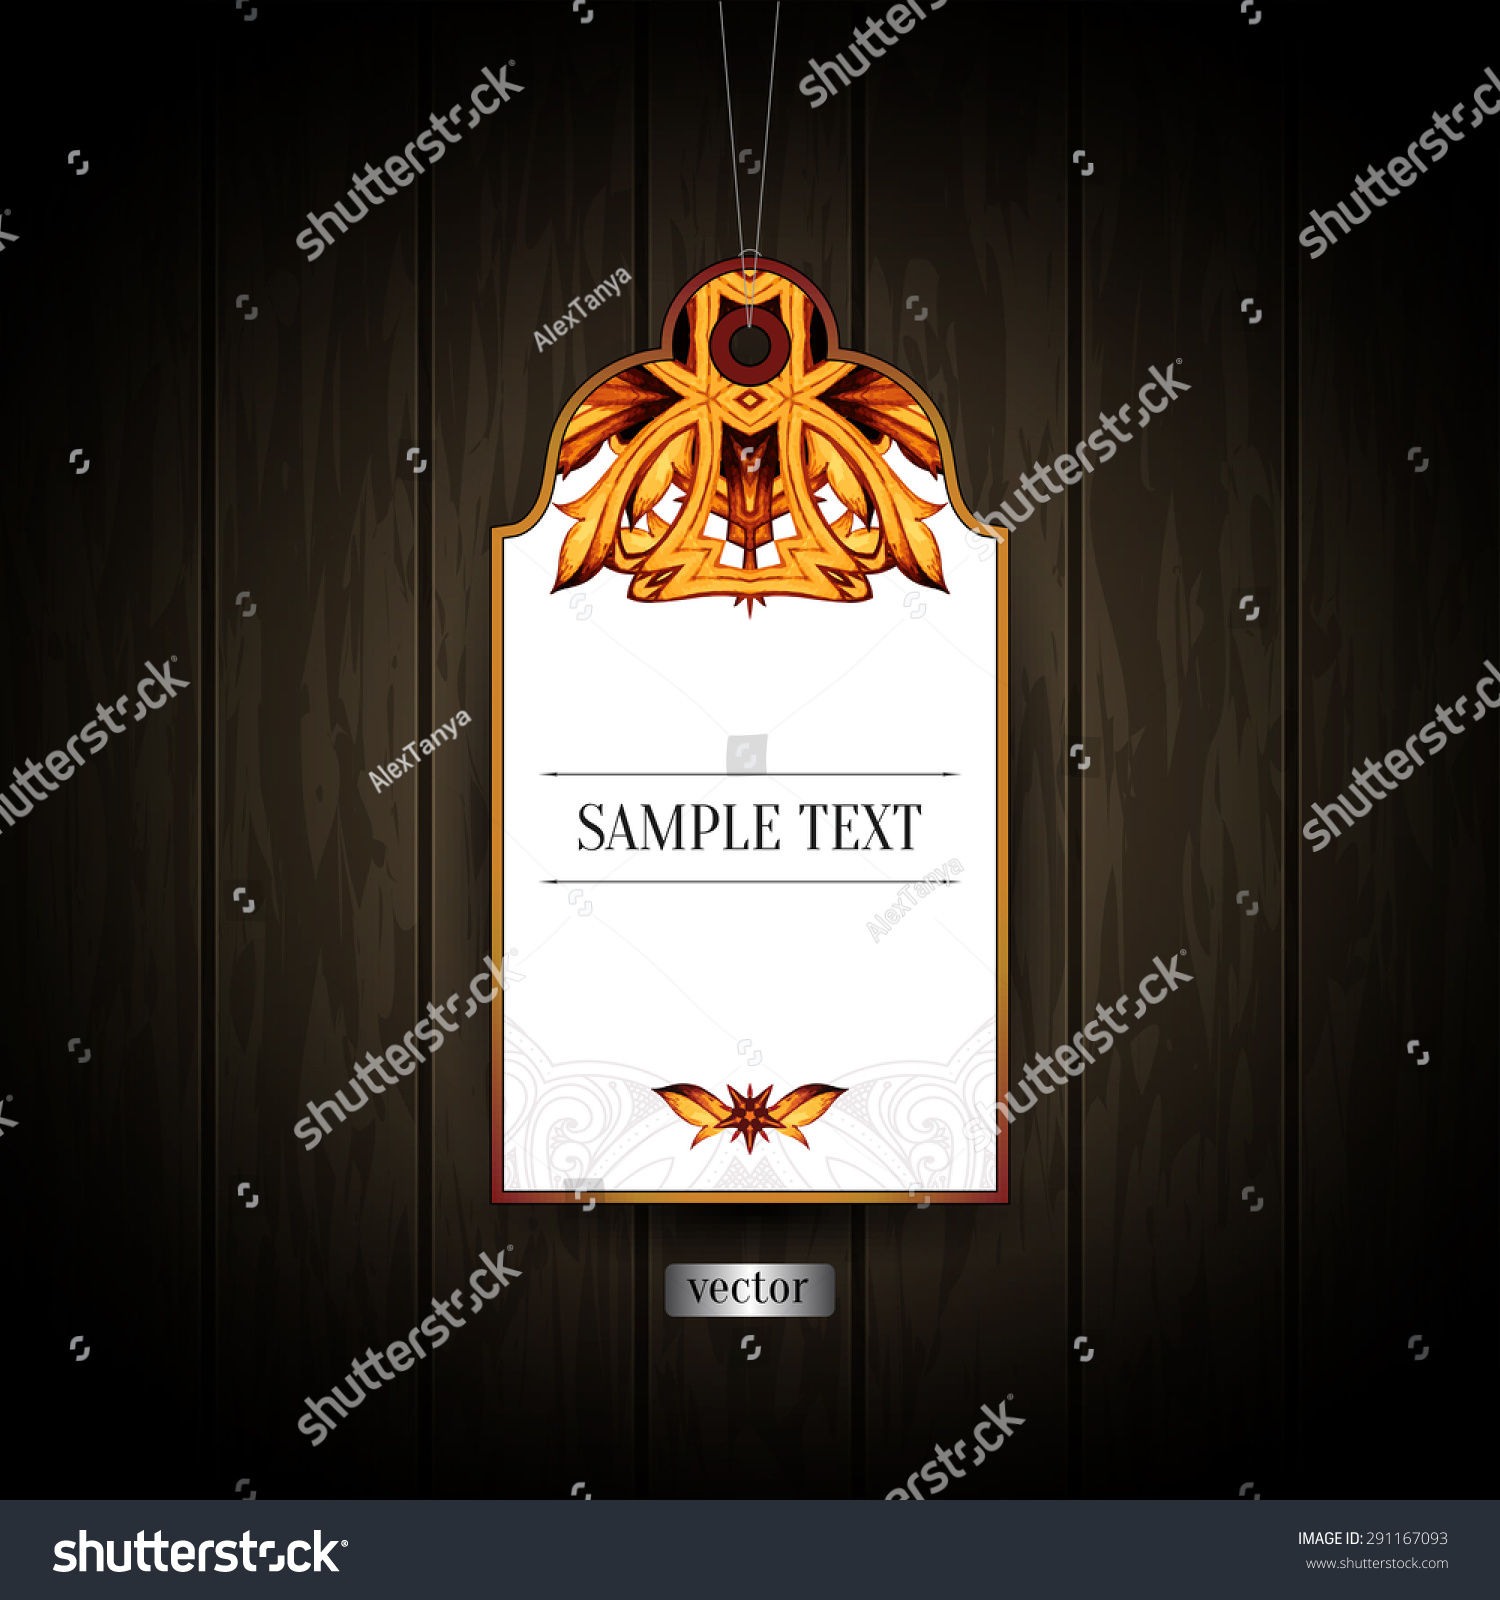 Design Templates Labels Sample Shipping Label Design Templates Stock Vector  Vintage Bag Luggage Tag Tag Art Wine Tag Label Apparel Labels Hanging Tags  ...